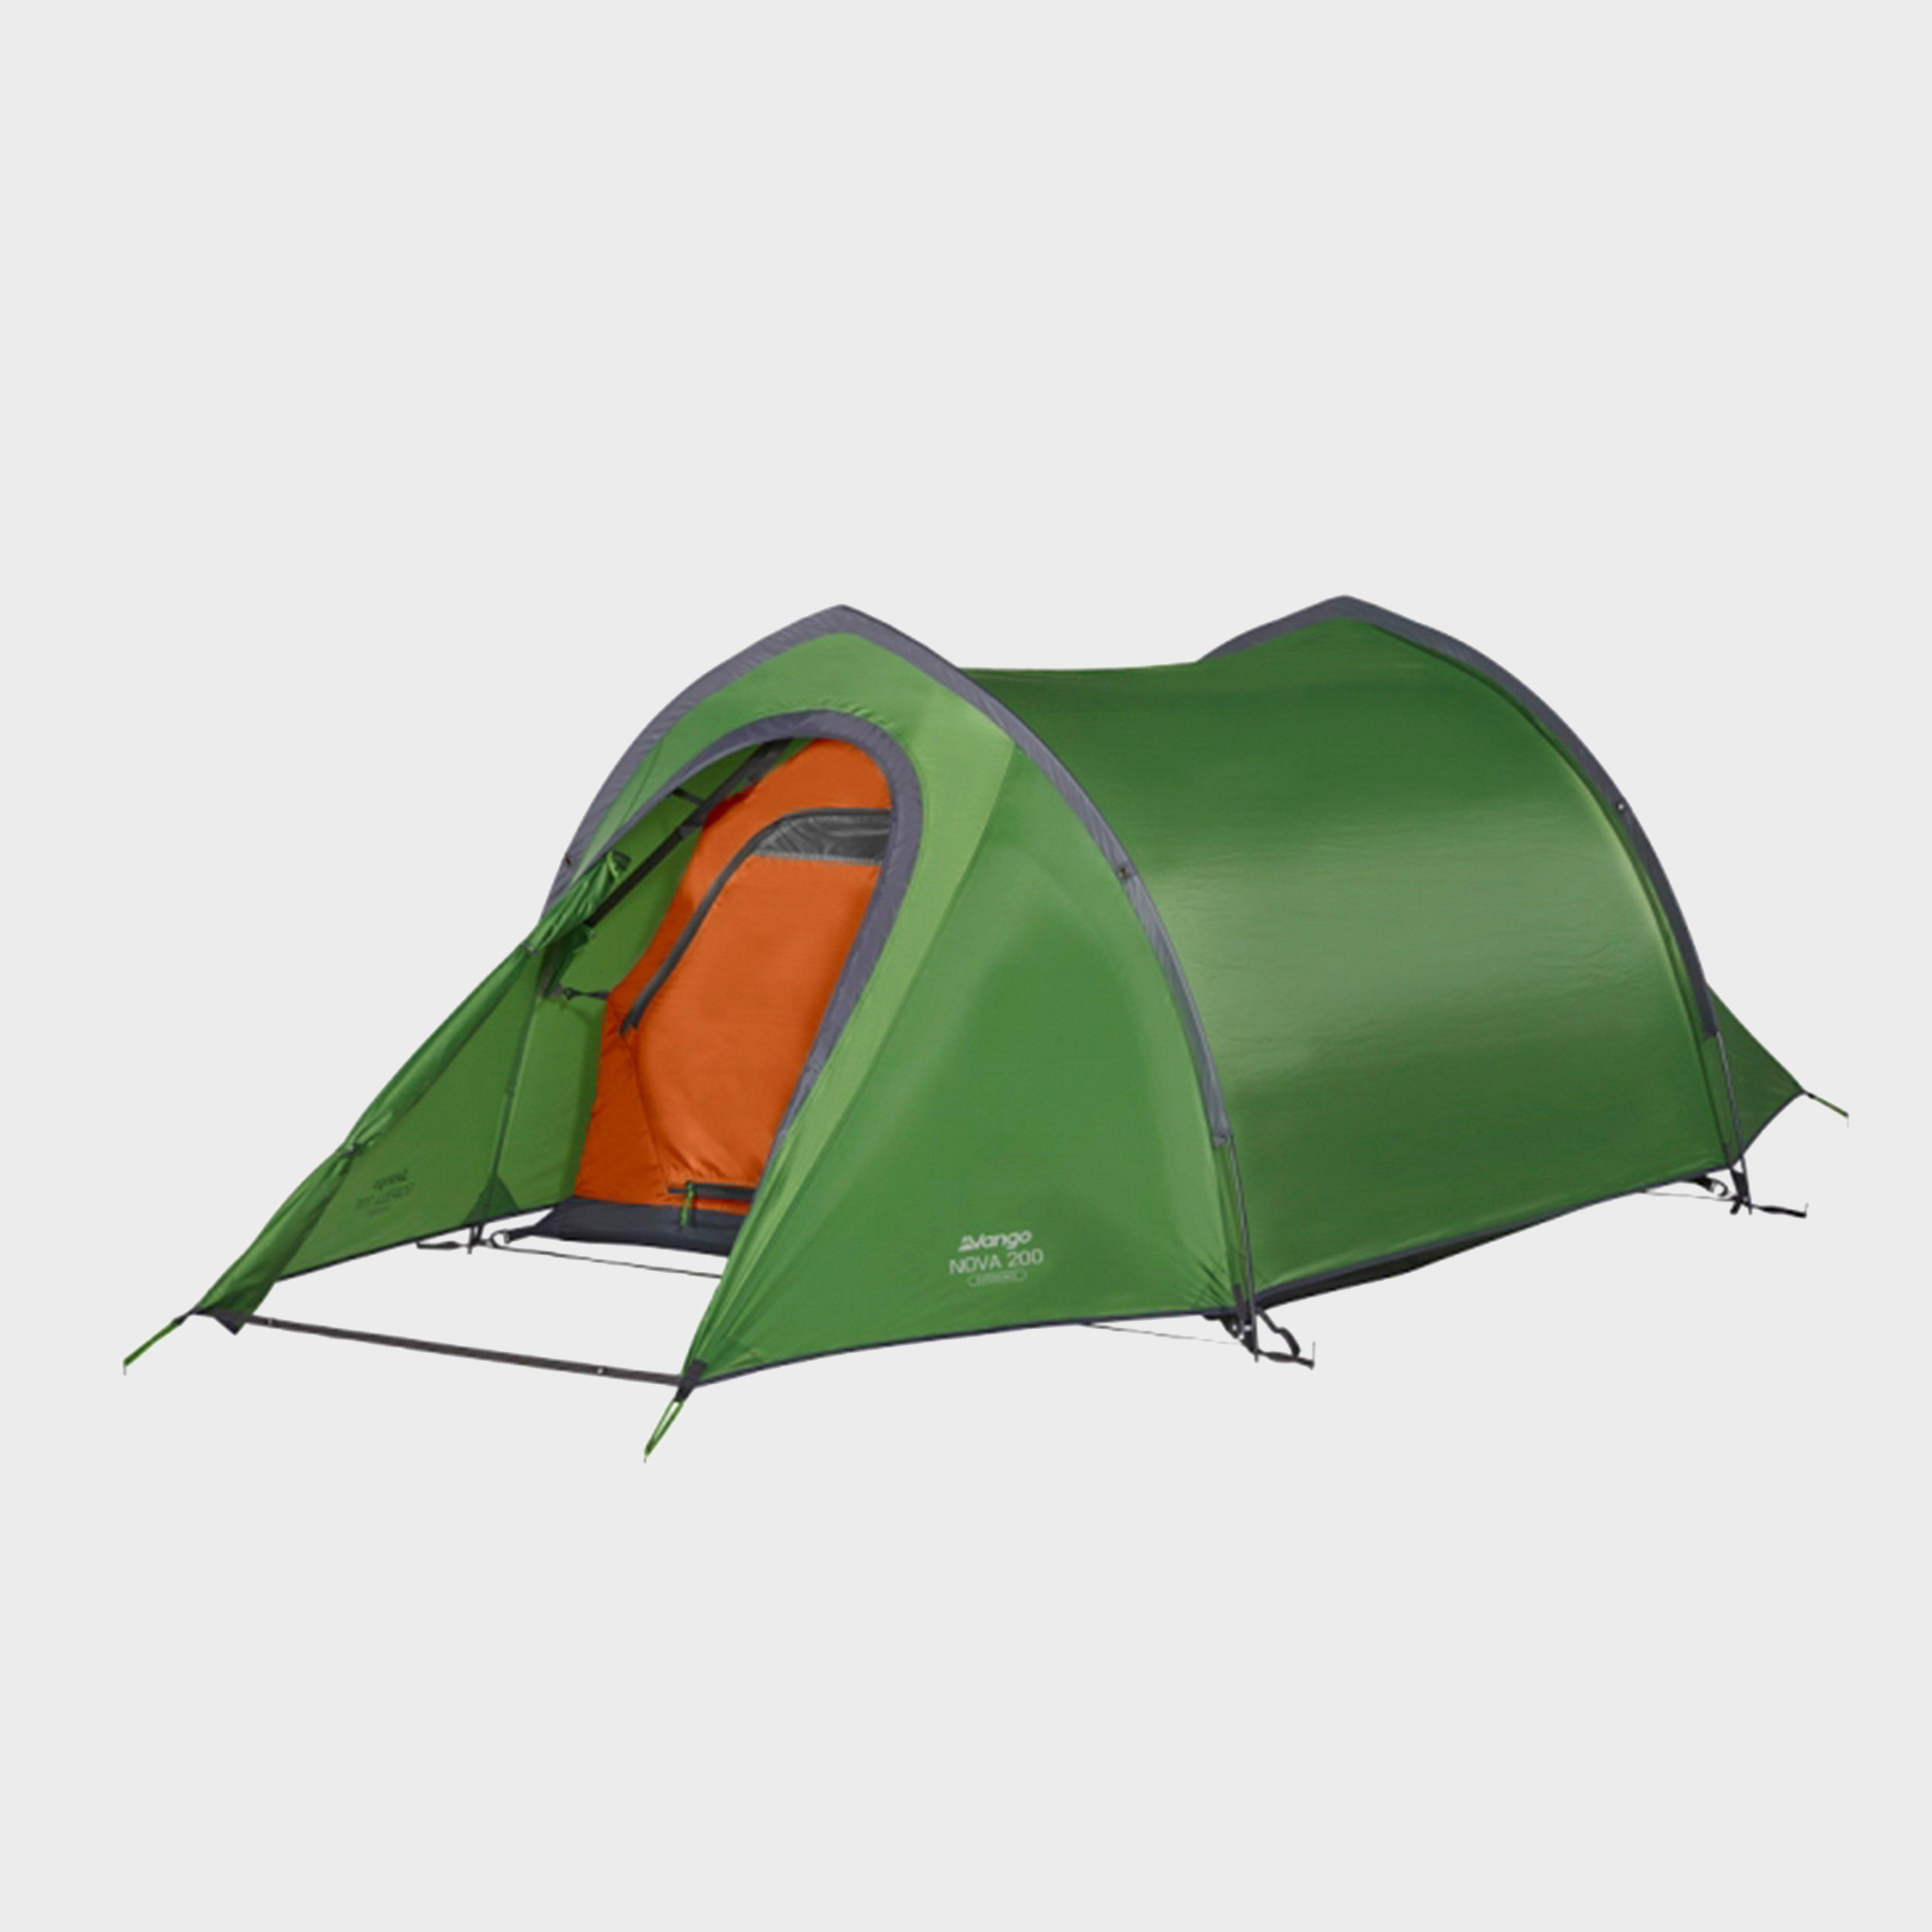 Vango Vango Nova 200 Backpacking Tent (green), Green